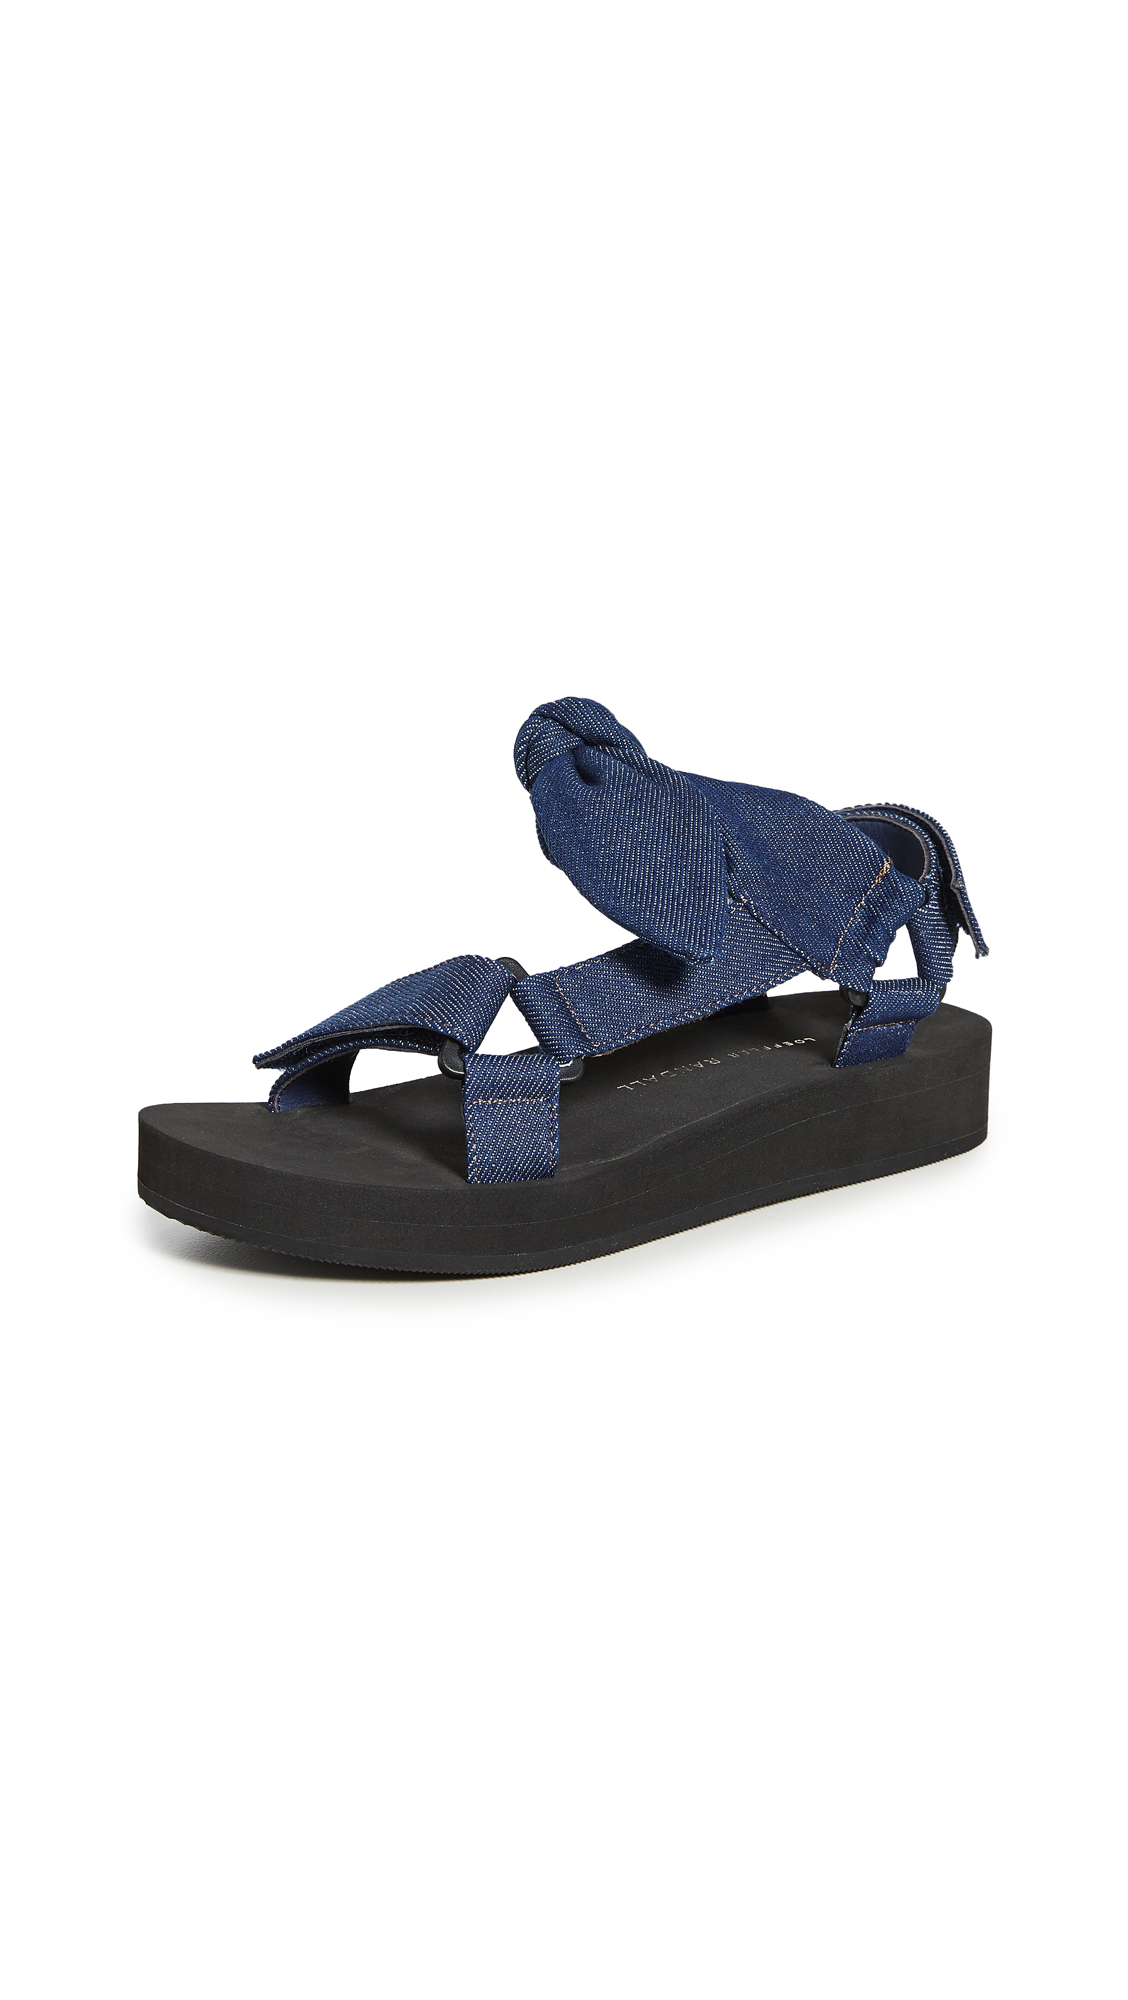 Buy Loeffler Randall online - photo of Loeffler Randall Maisie Sport Sandals